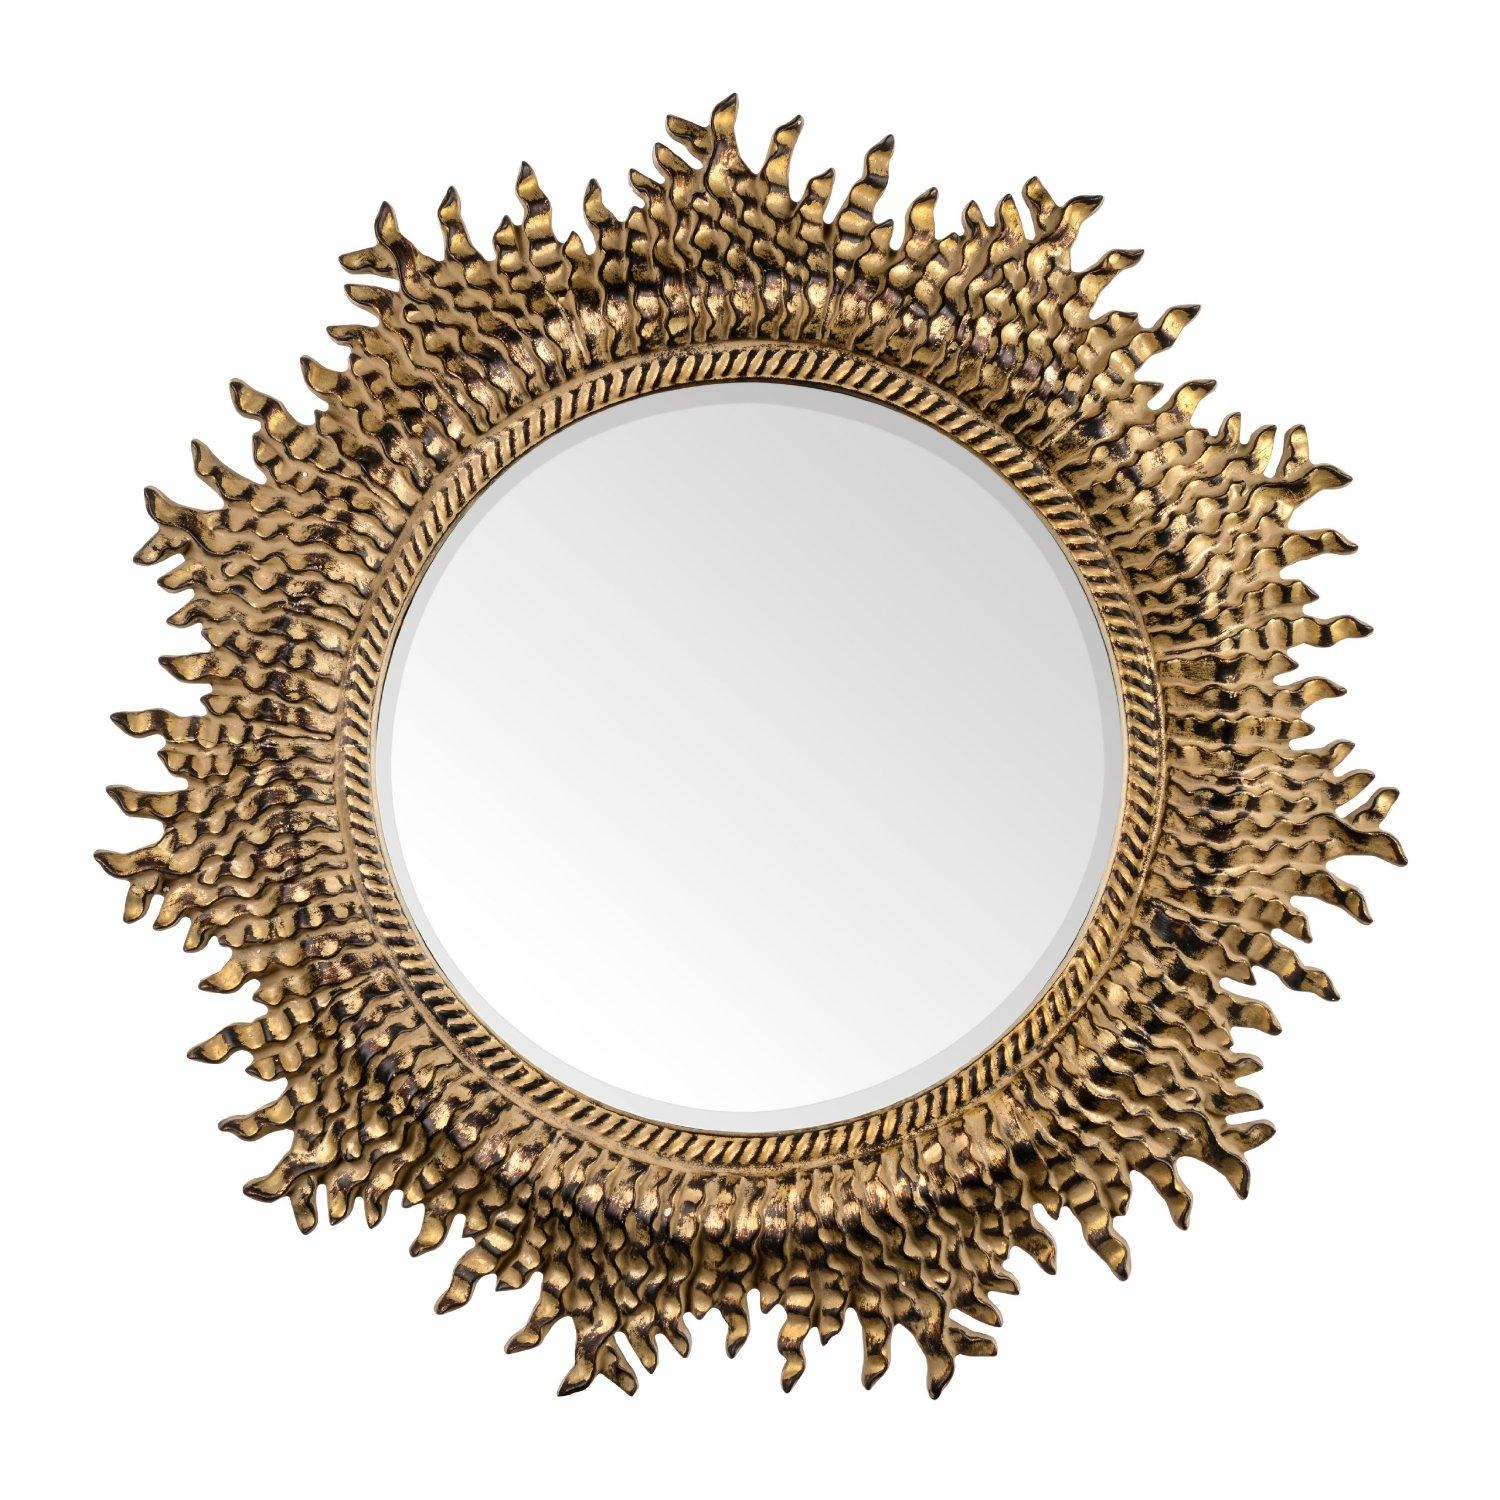 16 Ornate Mirrors For Your Home | Qosy In Gold Round Mirrors (Image 1 of 20)